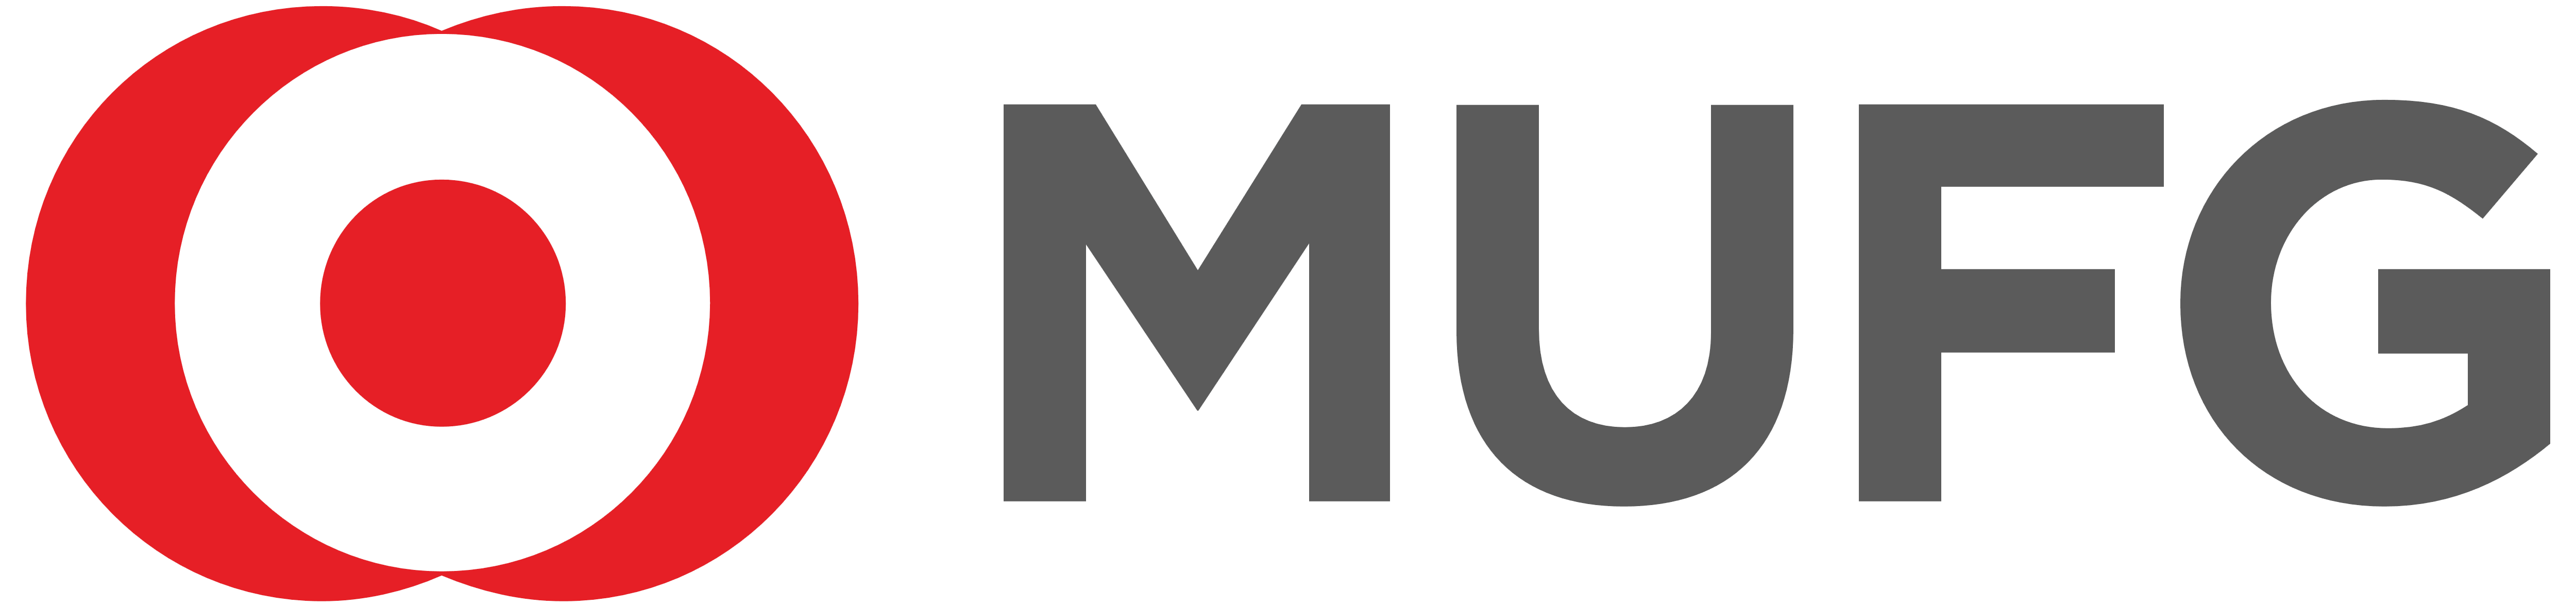 MUFG logo (Mitsubishi UFJ Financial Group) - Mufg Logo PNG